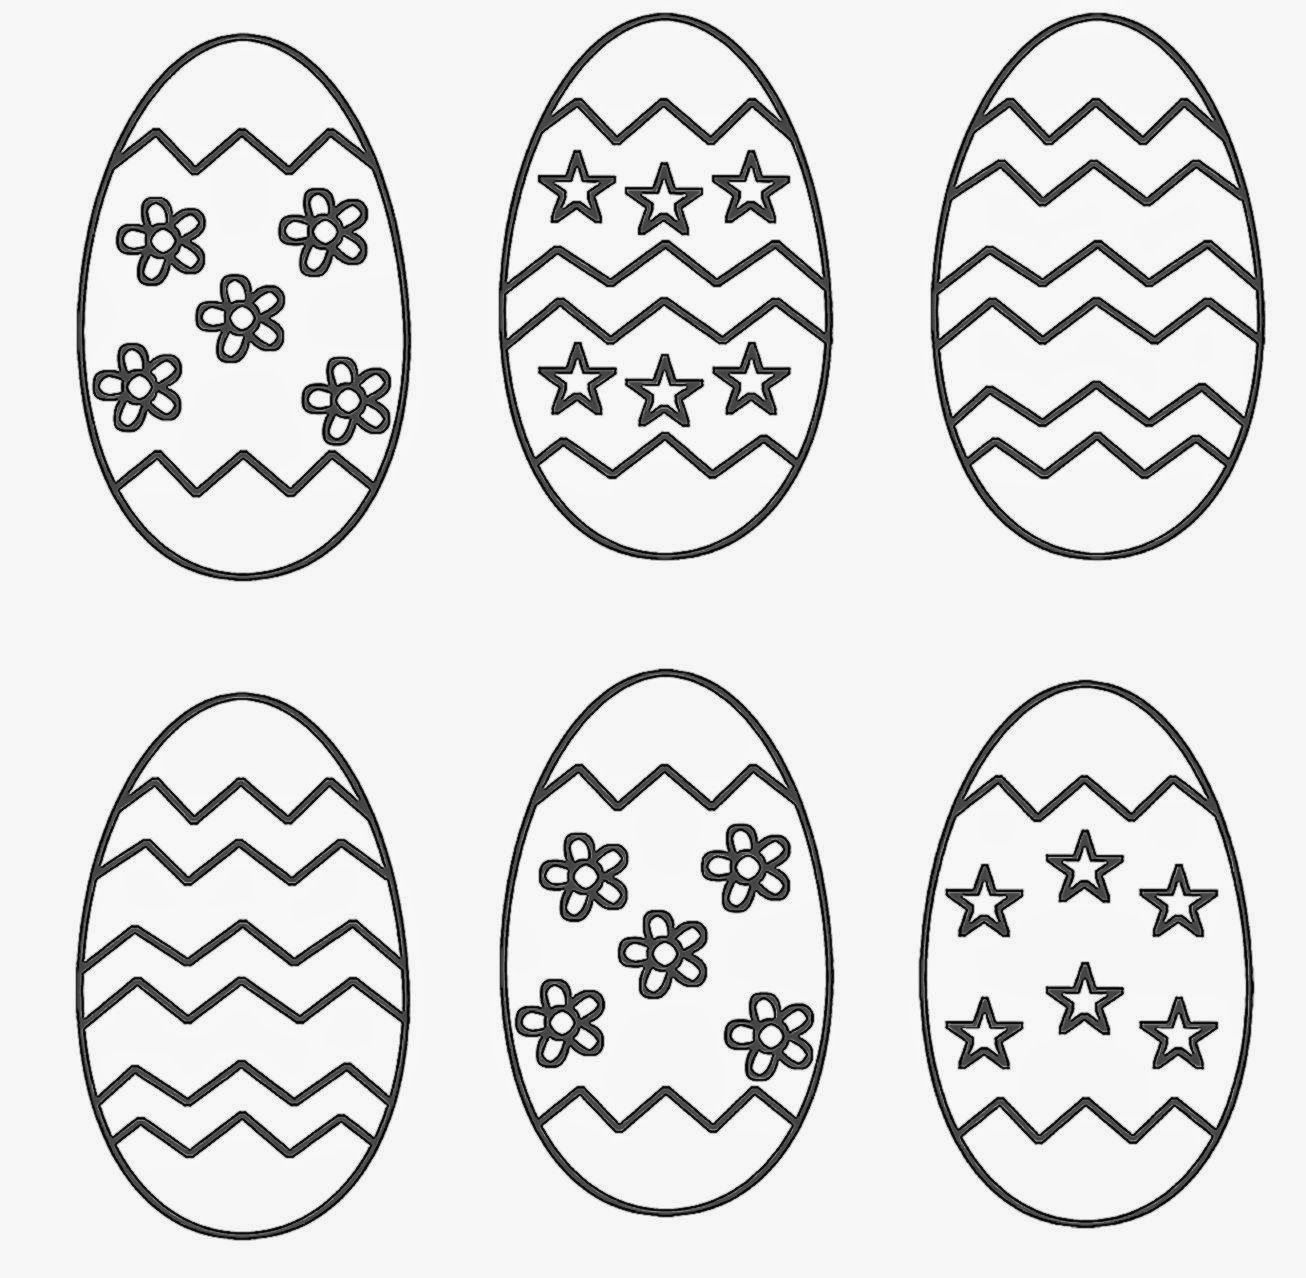 Online coloring pages for easter - Hard Easter Eggs Coloring Pages Coloring Online